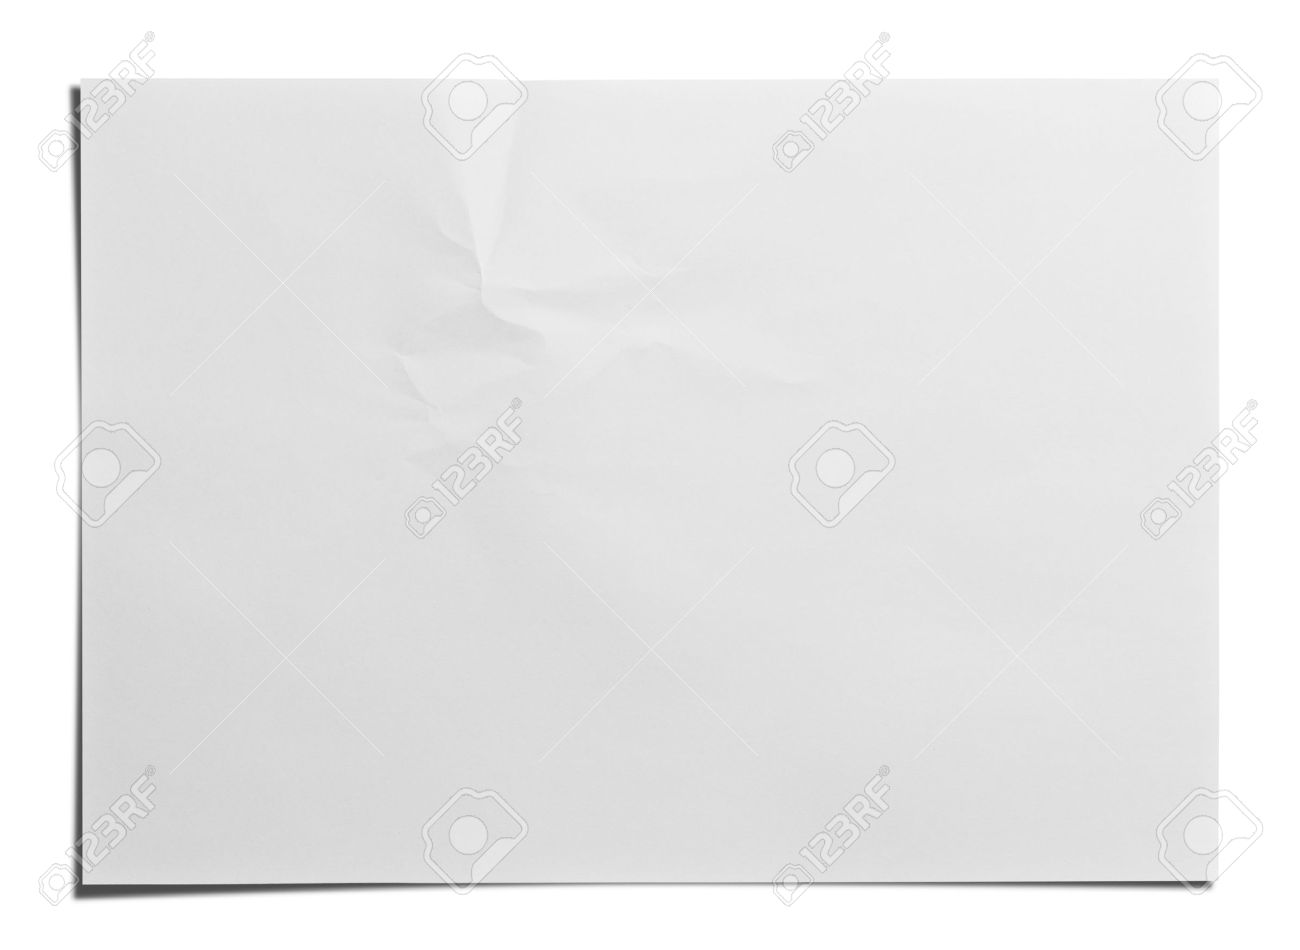 Paper Texture White Paper Sheet Stock Photo, Picture And Royalty ...